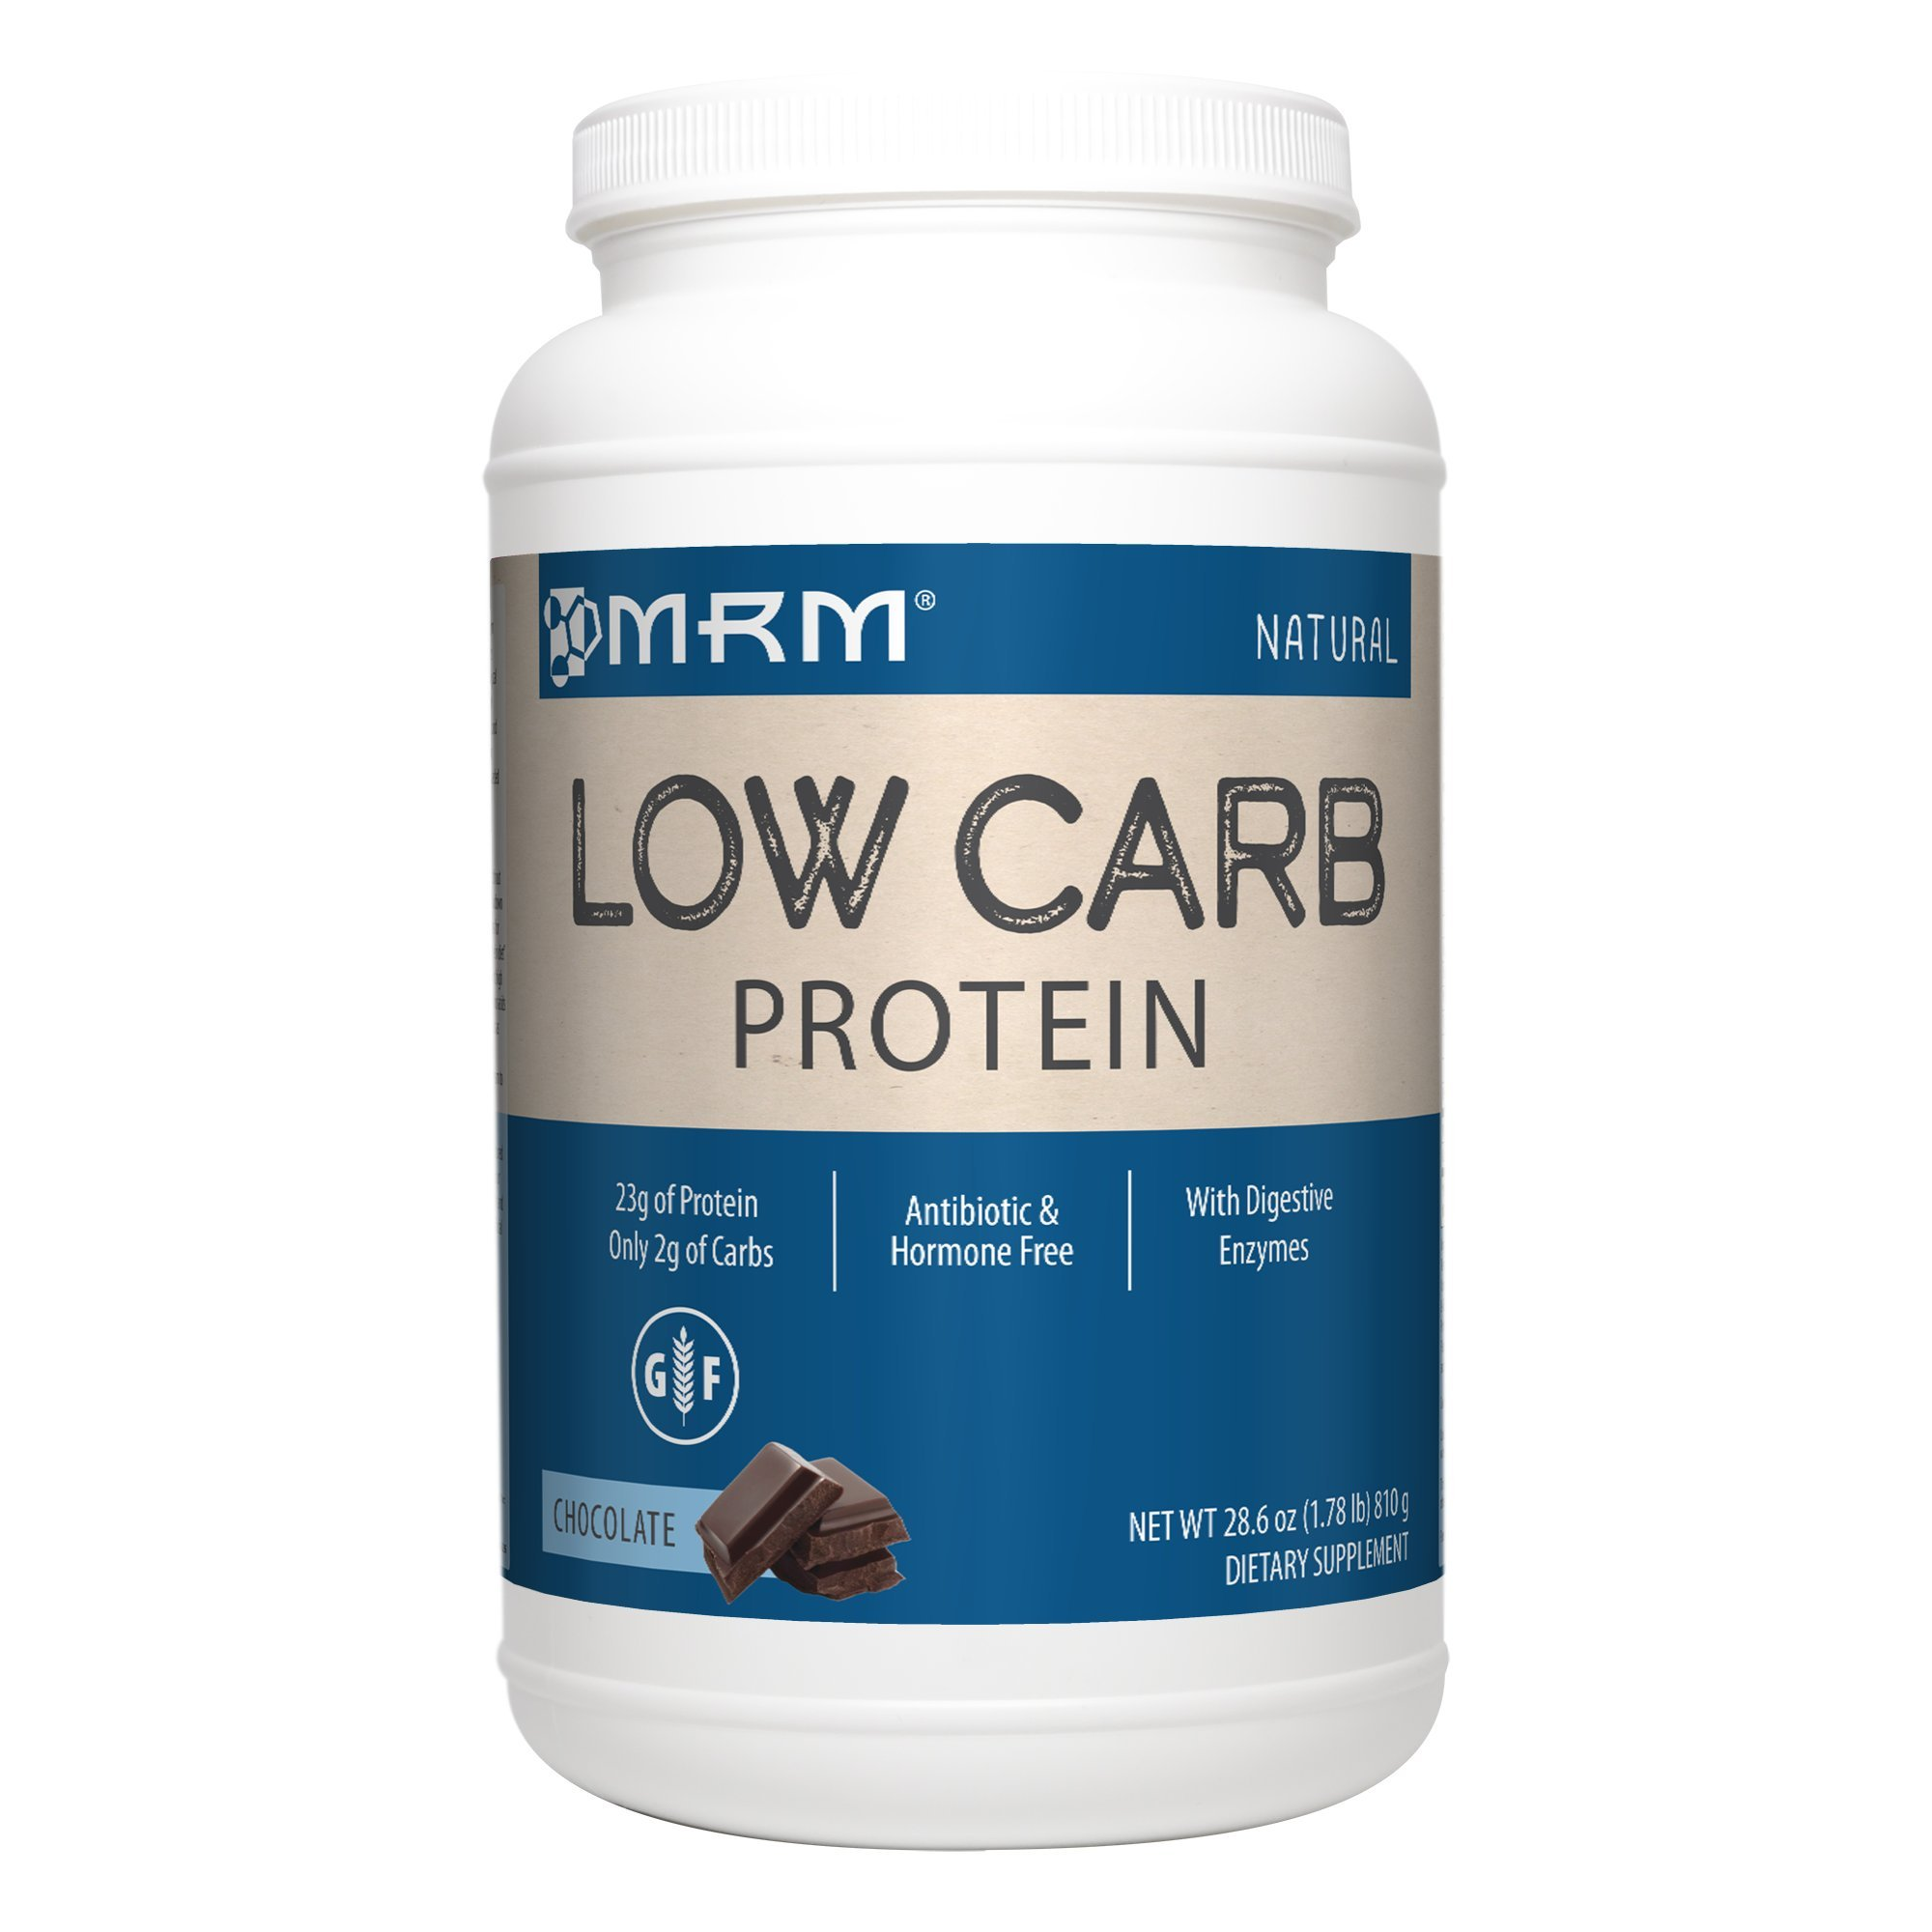 MRM - Low Carb Protein, Sustained Release Protein to Maximize Muscle Strength with Branched Chain Amino Acids, 23 Grams of Protein Per Serving (Creamy Chocolate, 1.78 lbs)